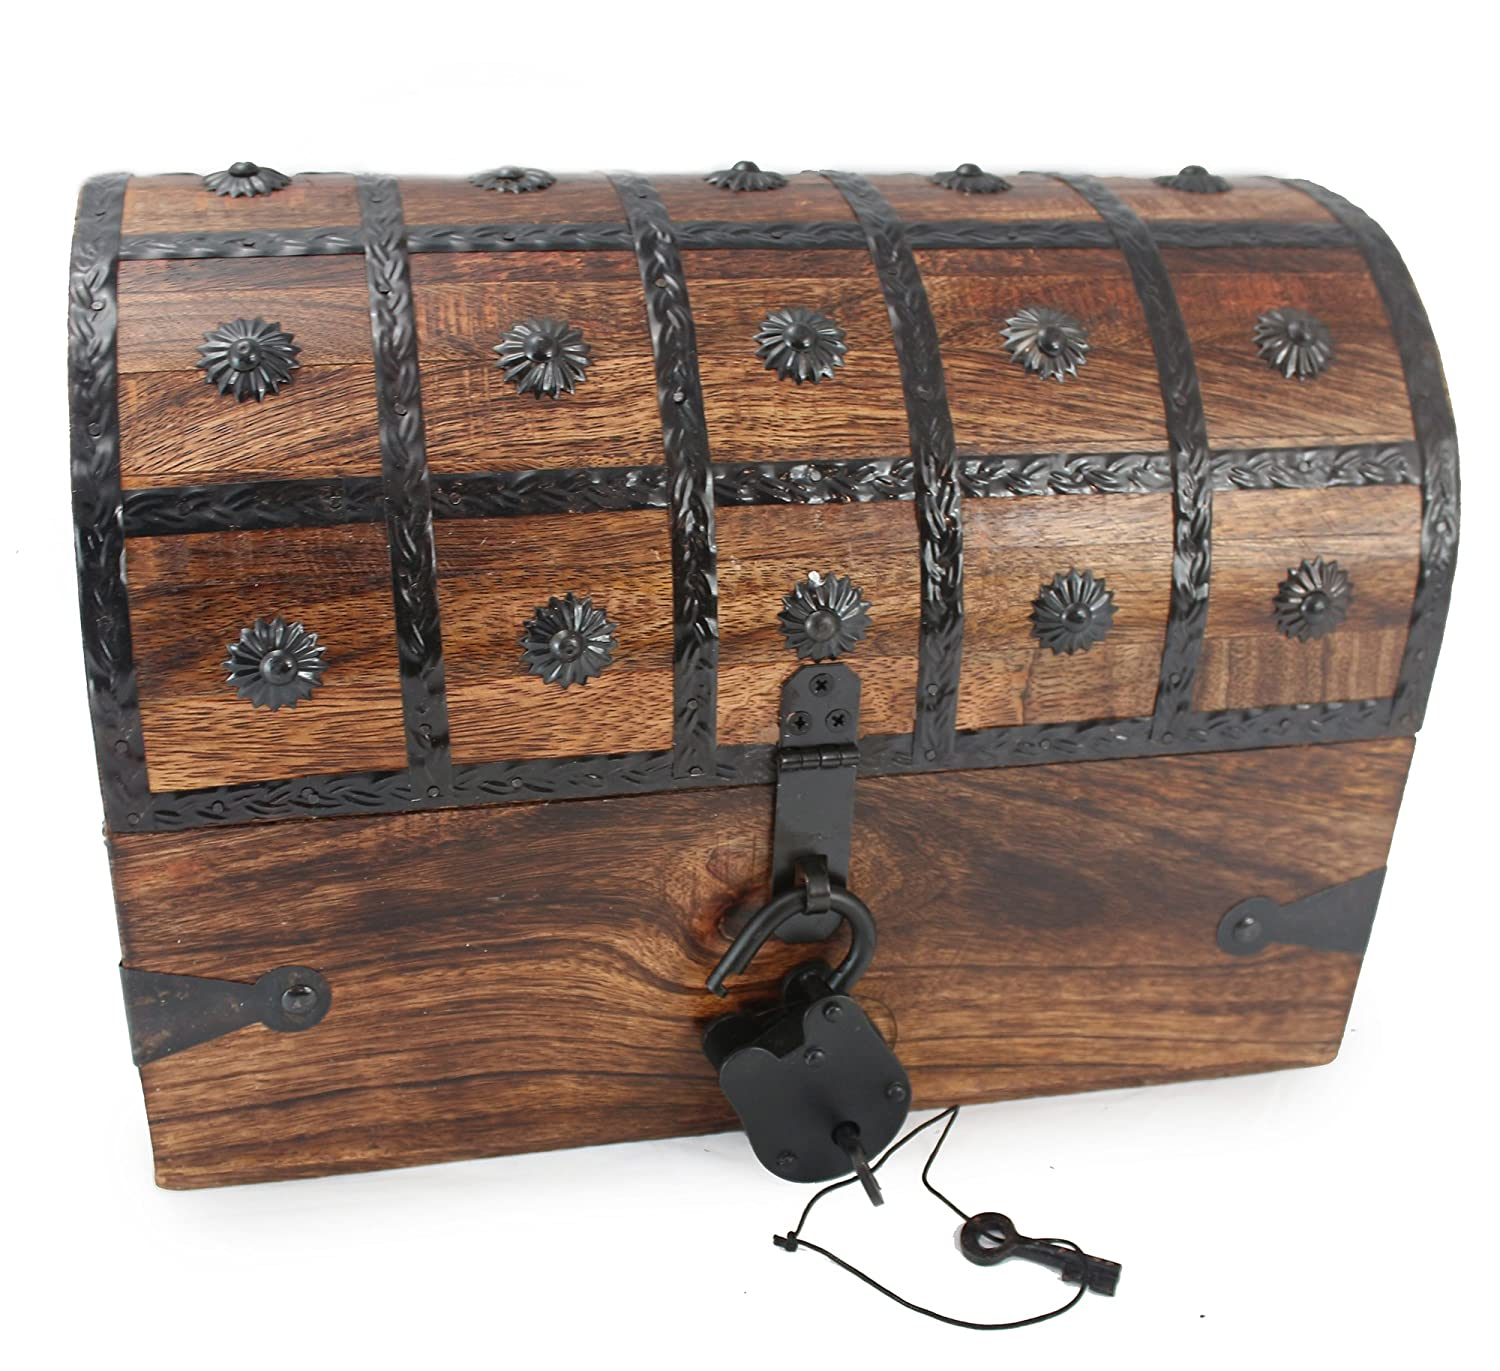 """Well Pack Box 3 Mini Wooden Pirate Treasure Chest Kids Toys 5"""" x 2.75"""" x 3.25"""" with Strong Metal Hasp"""